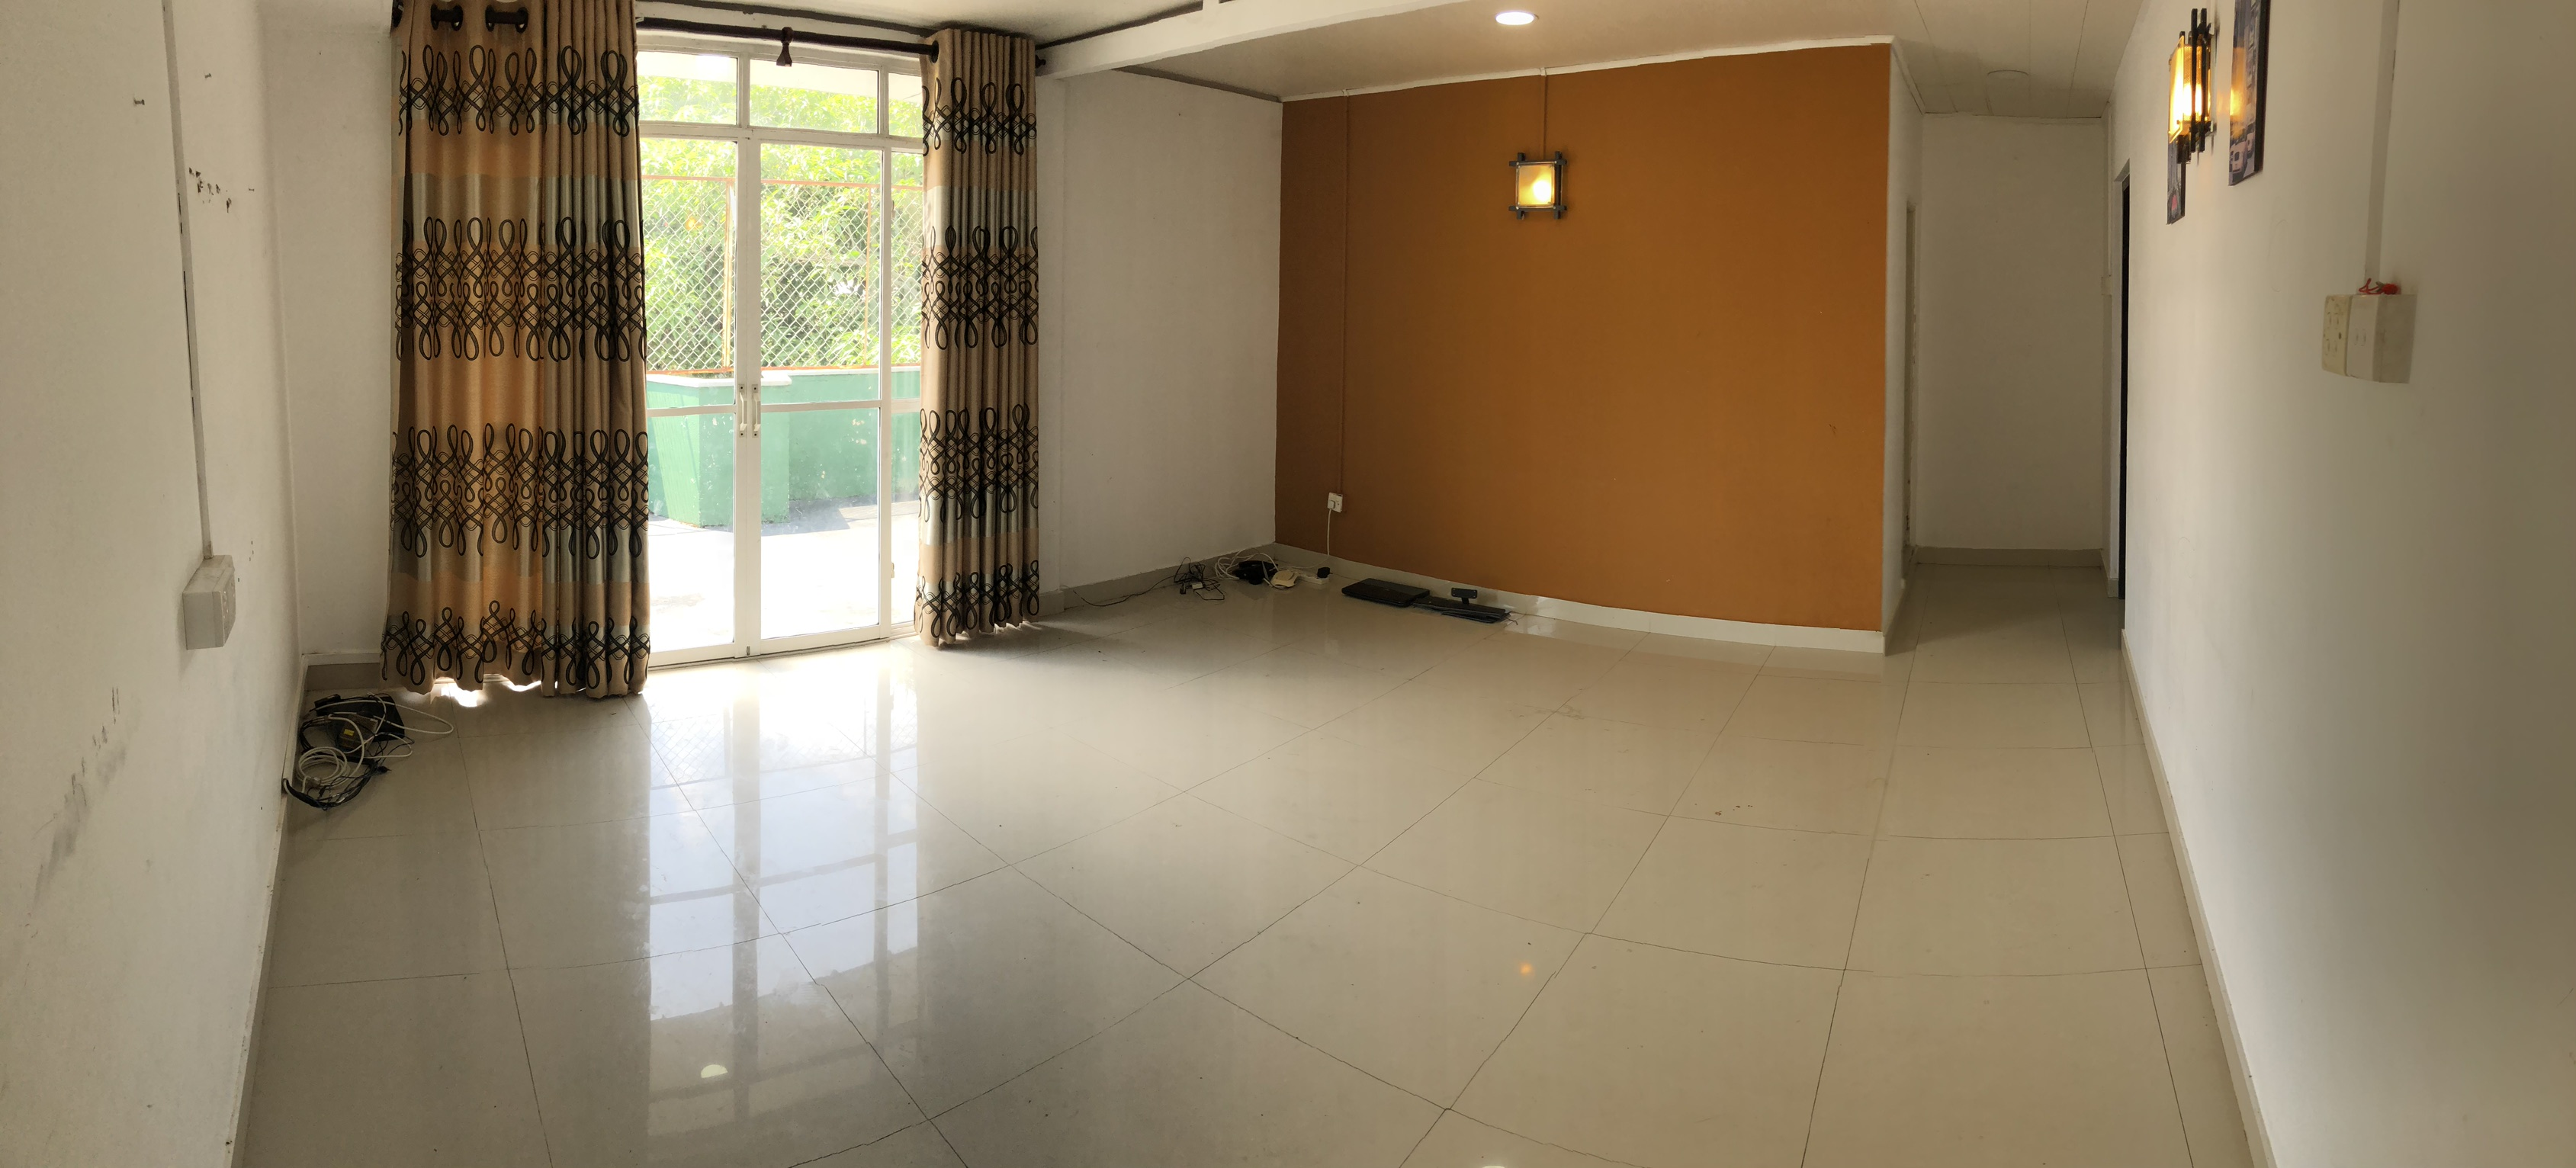 1BHK on 2nd floor for rent